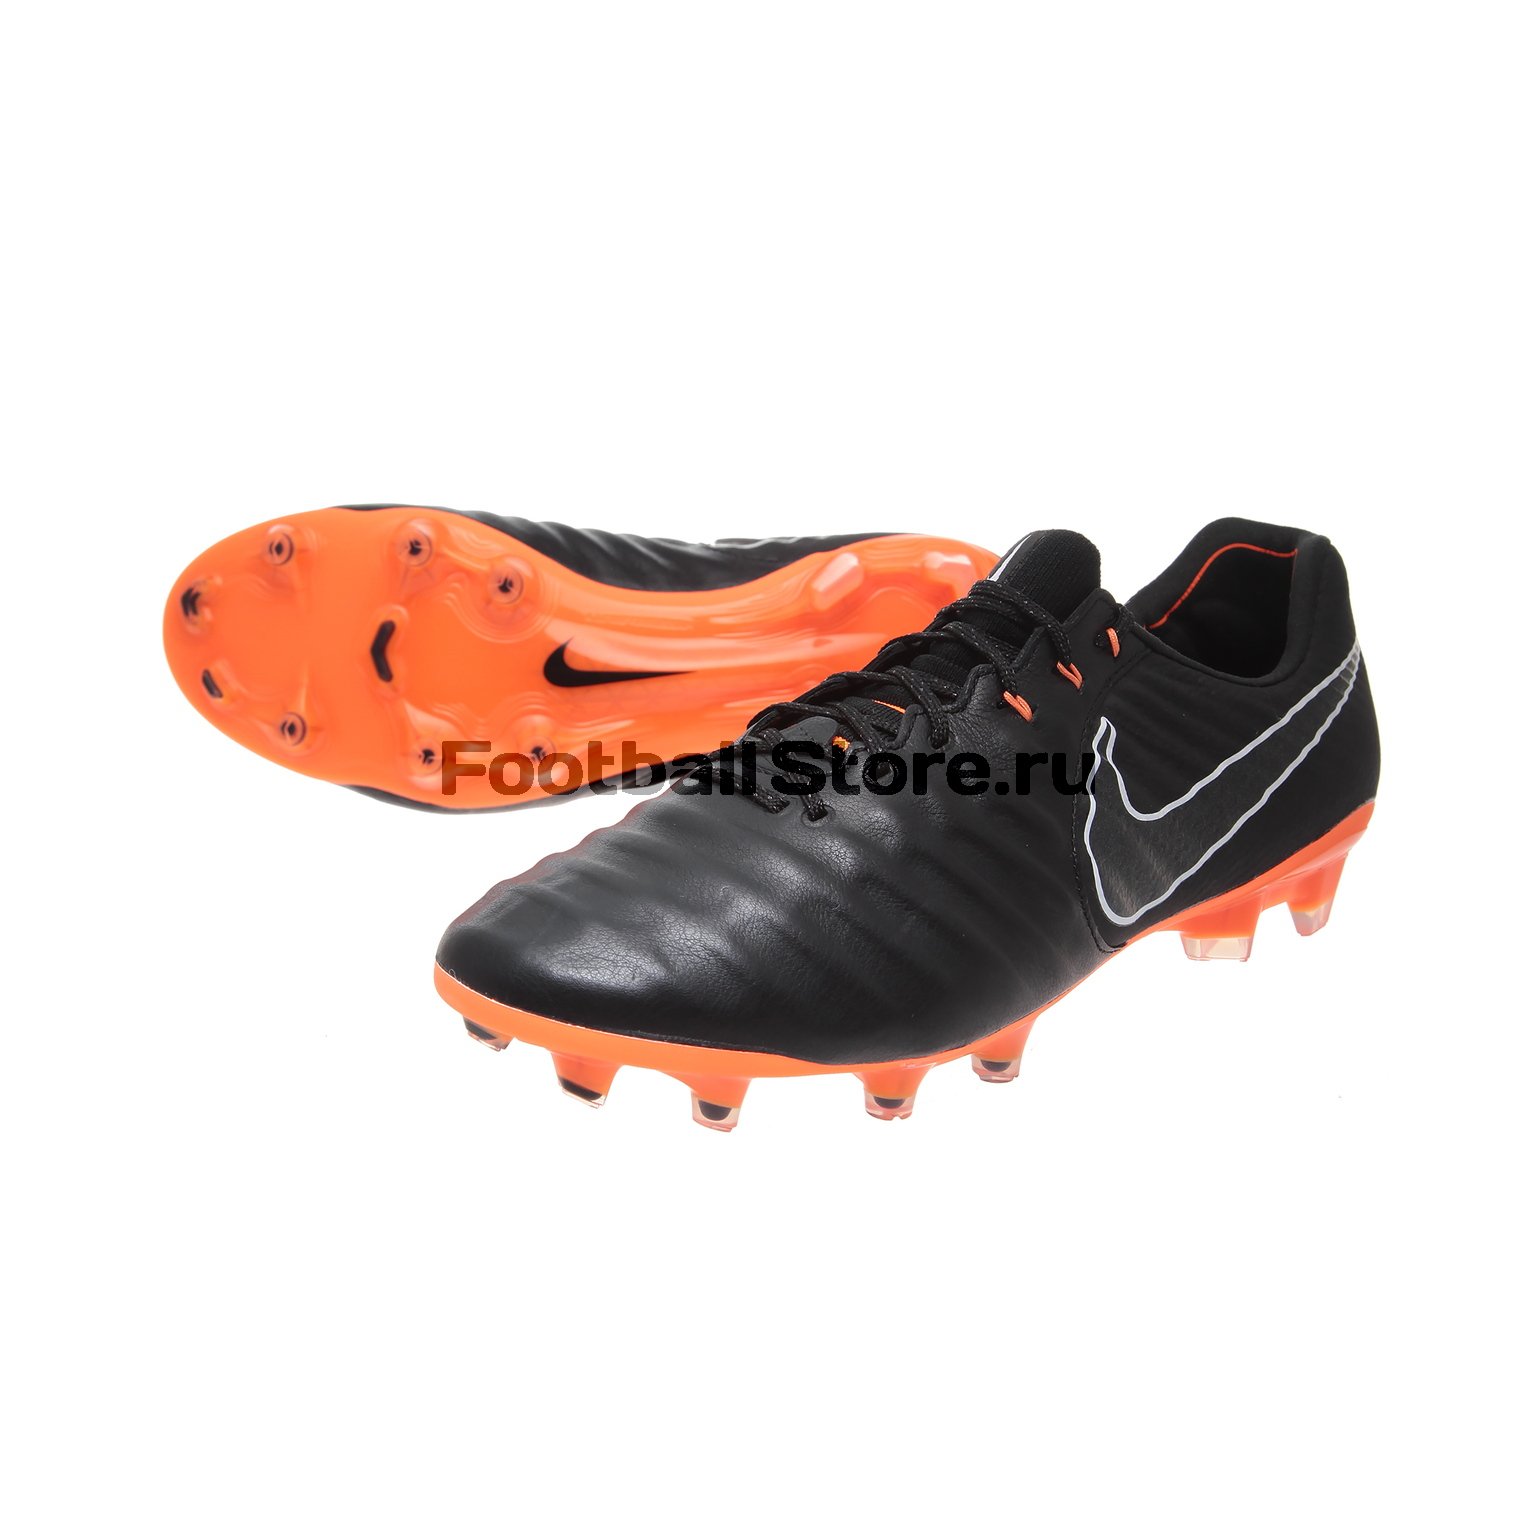 Бутсы Nike Legend 7 Elite FG AH7238-080 детские бутсы nike бутсы nike jr phantom 3 elite df fg ah7292 081